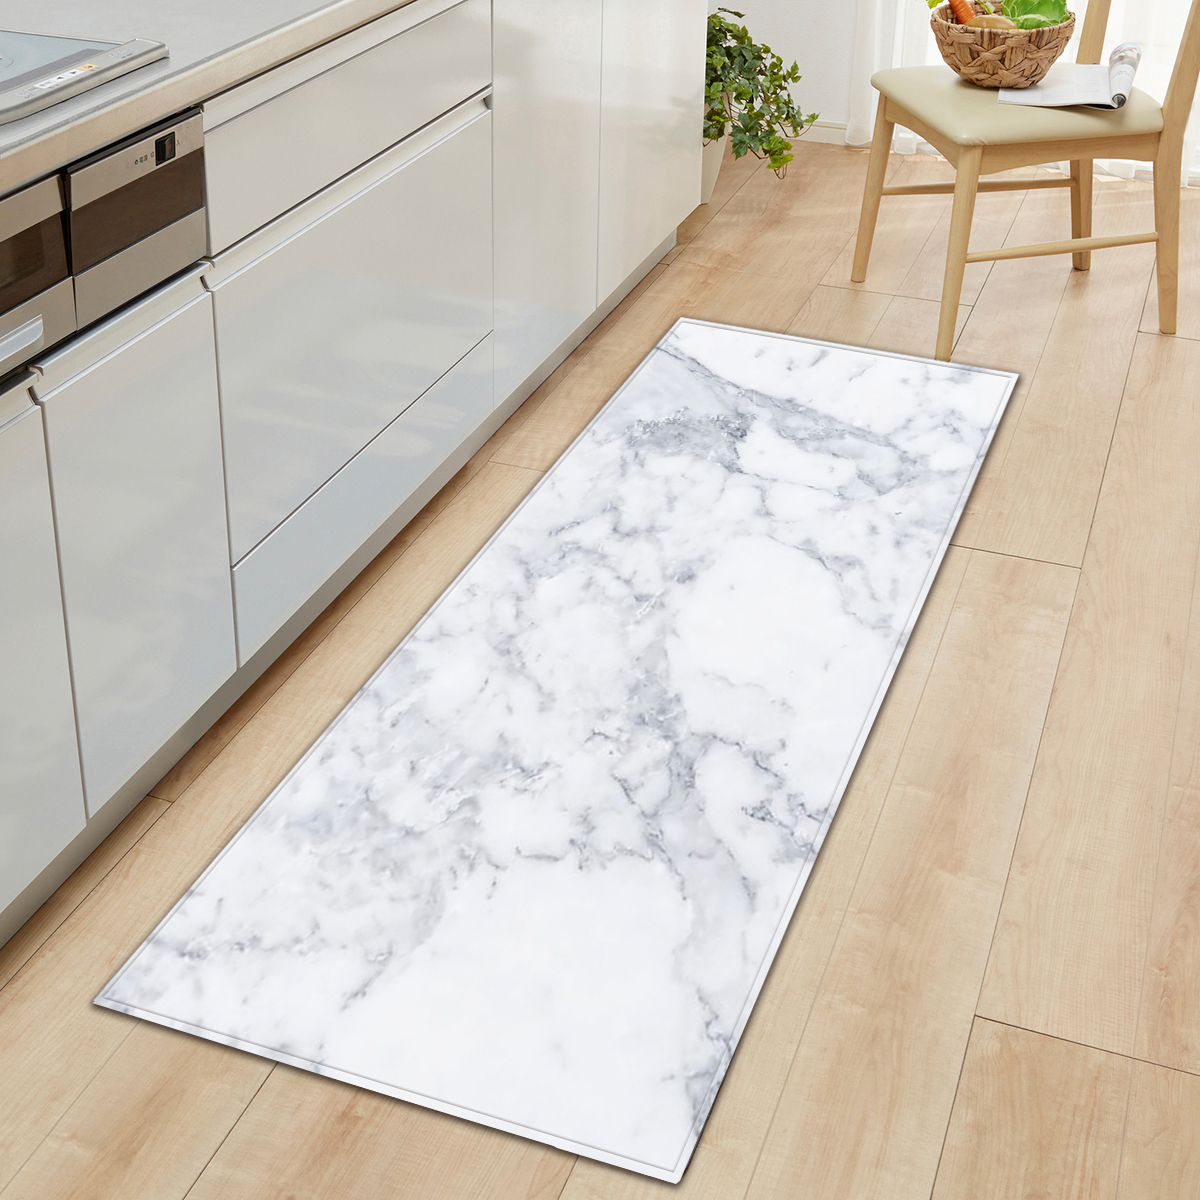 Marble Pattern Printed Floor Mat Kitchen Non Slip Floor Mats For Living Rooms Door Mats Entrance Decor Floor Rug Carpet